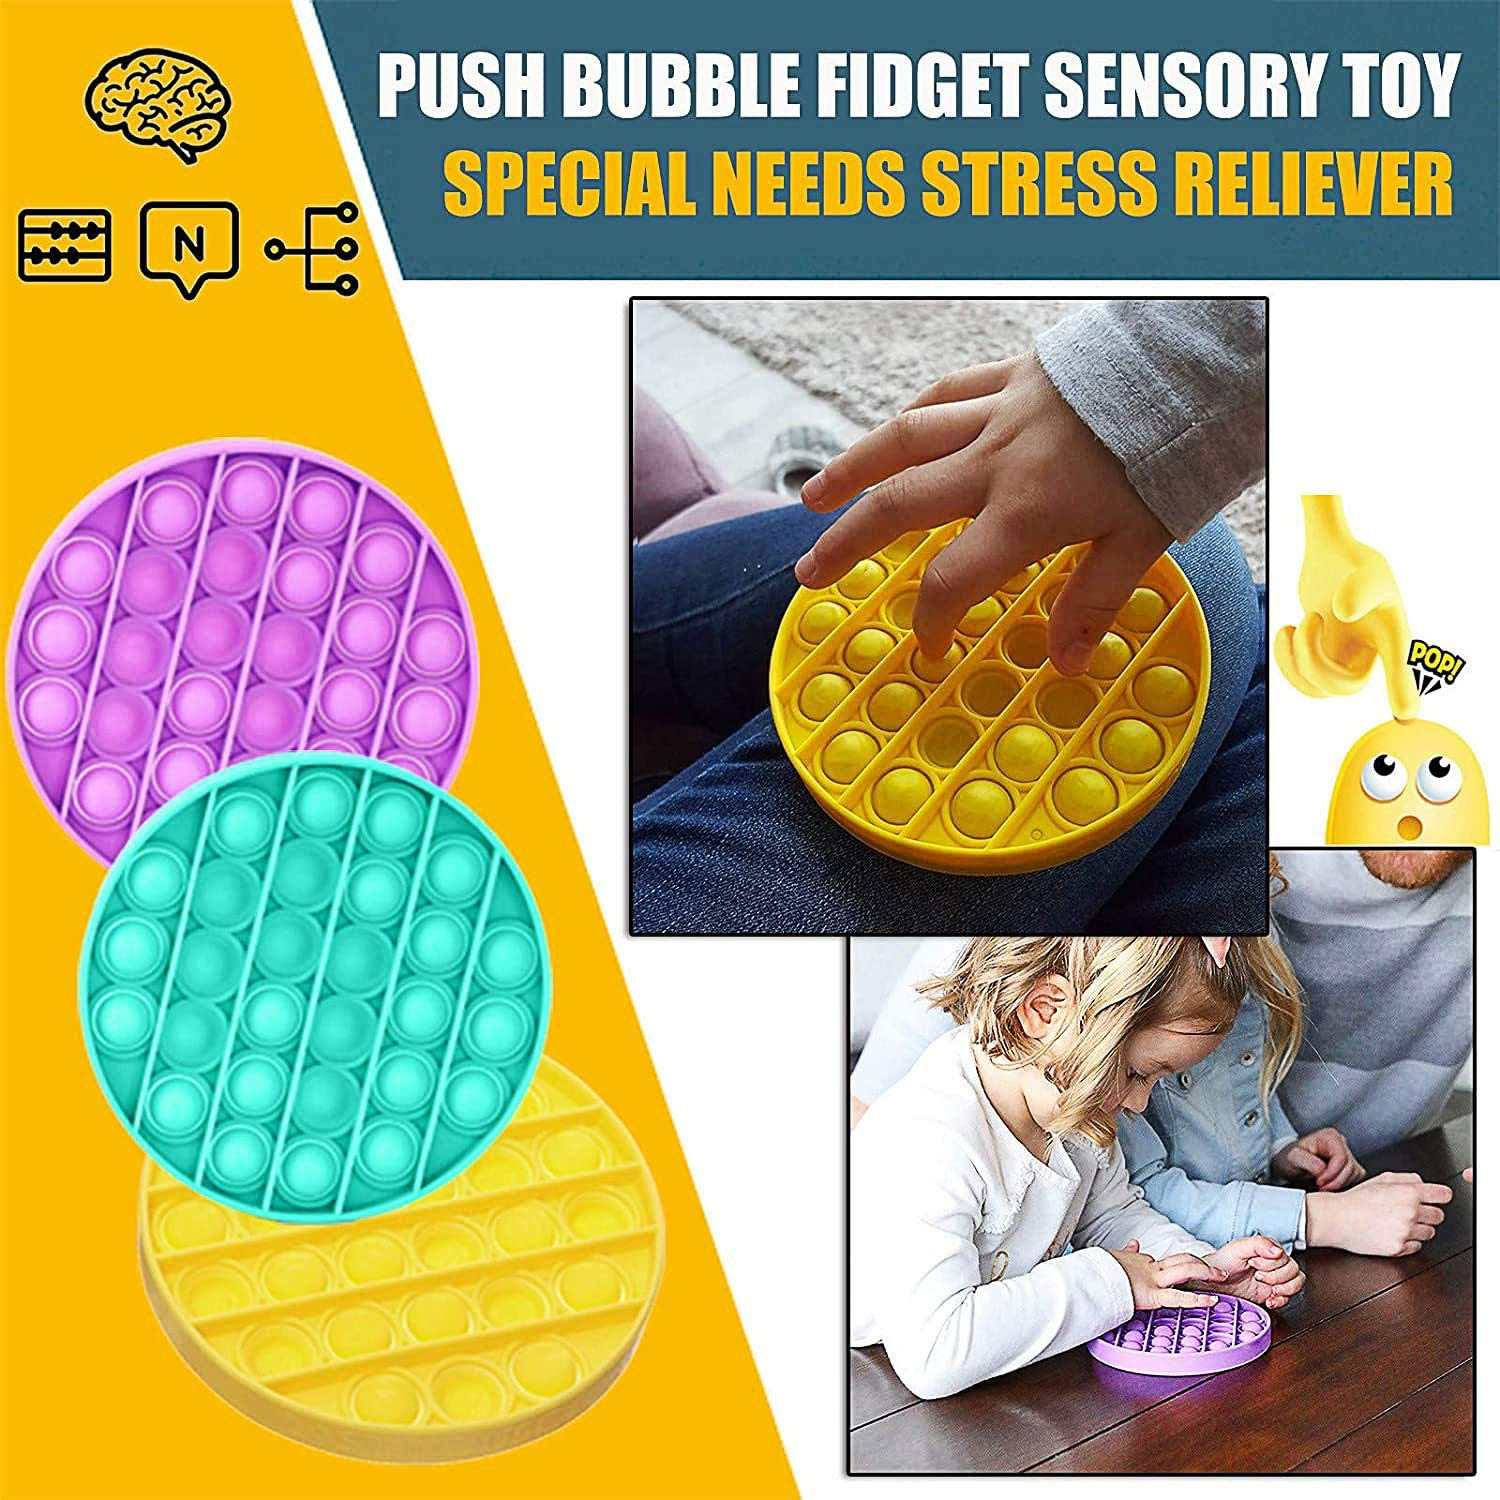 Green /& Purple, Round Autism Special Needs Stress Reliever Deelife 2 Pack Push pop Bubble Sensory Fidget Toy Squeeze Sensory Toy for Kids and Adults Silicone Stress Reliever Toy